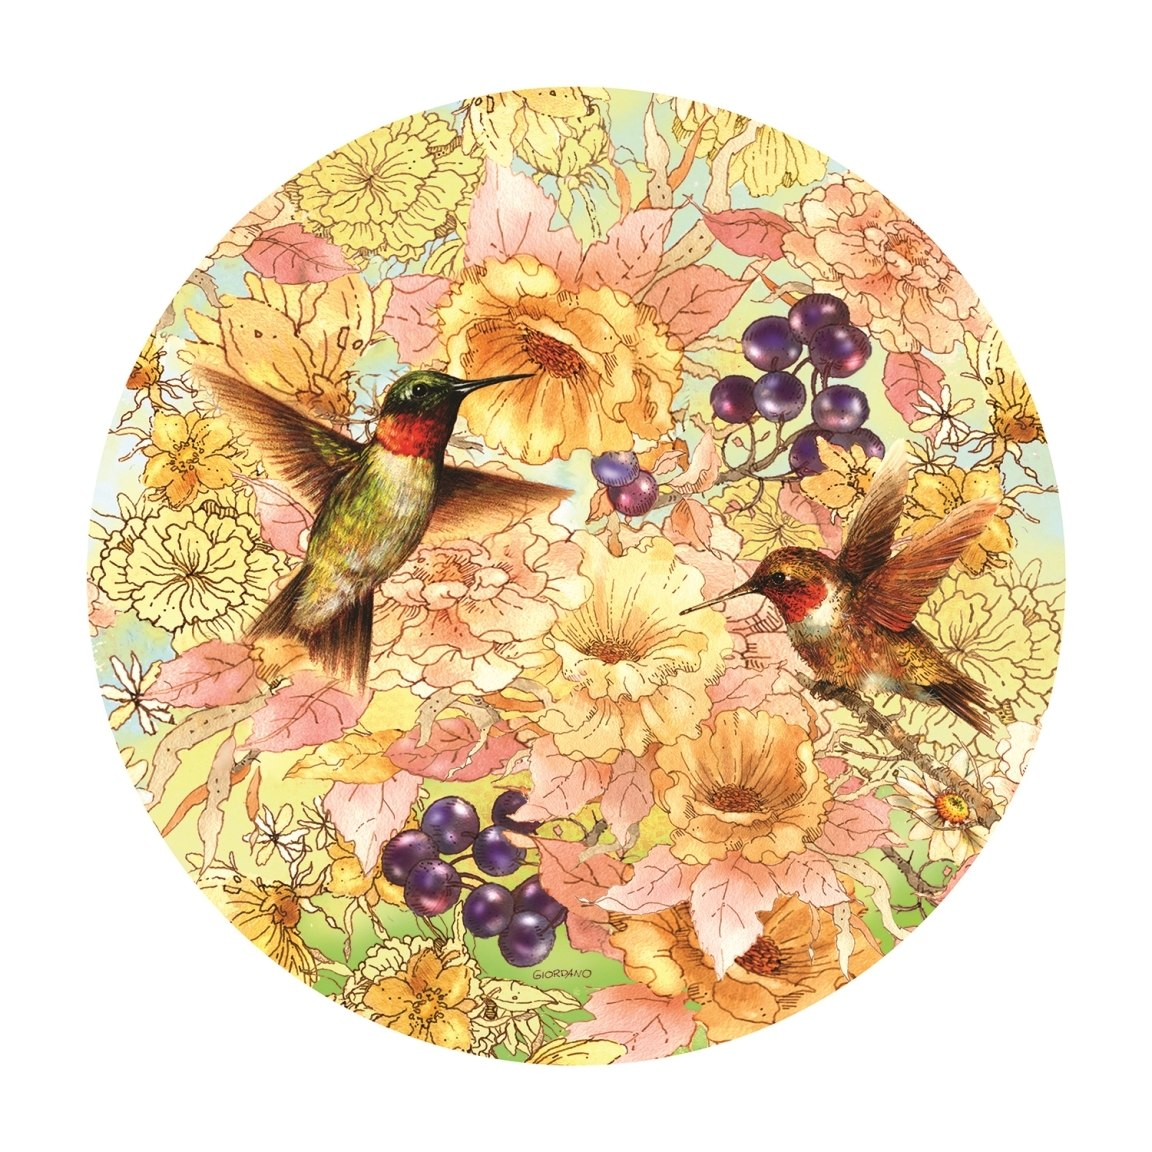 Hummingbirds and Berries - 1000pc Jigsaw Puzzle By Sunsout  			  					NEW